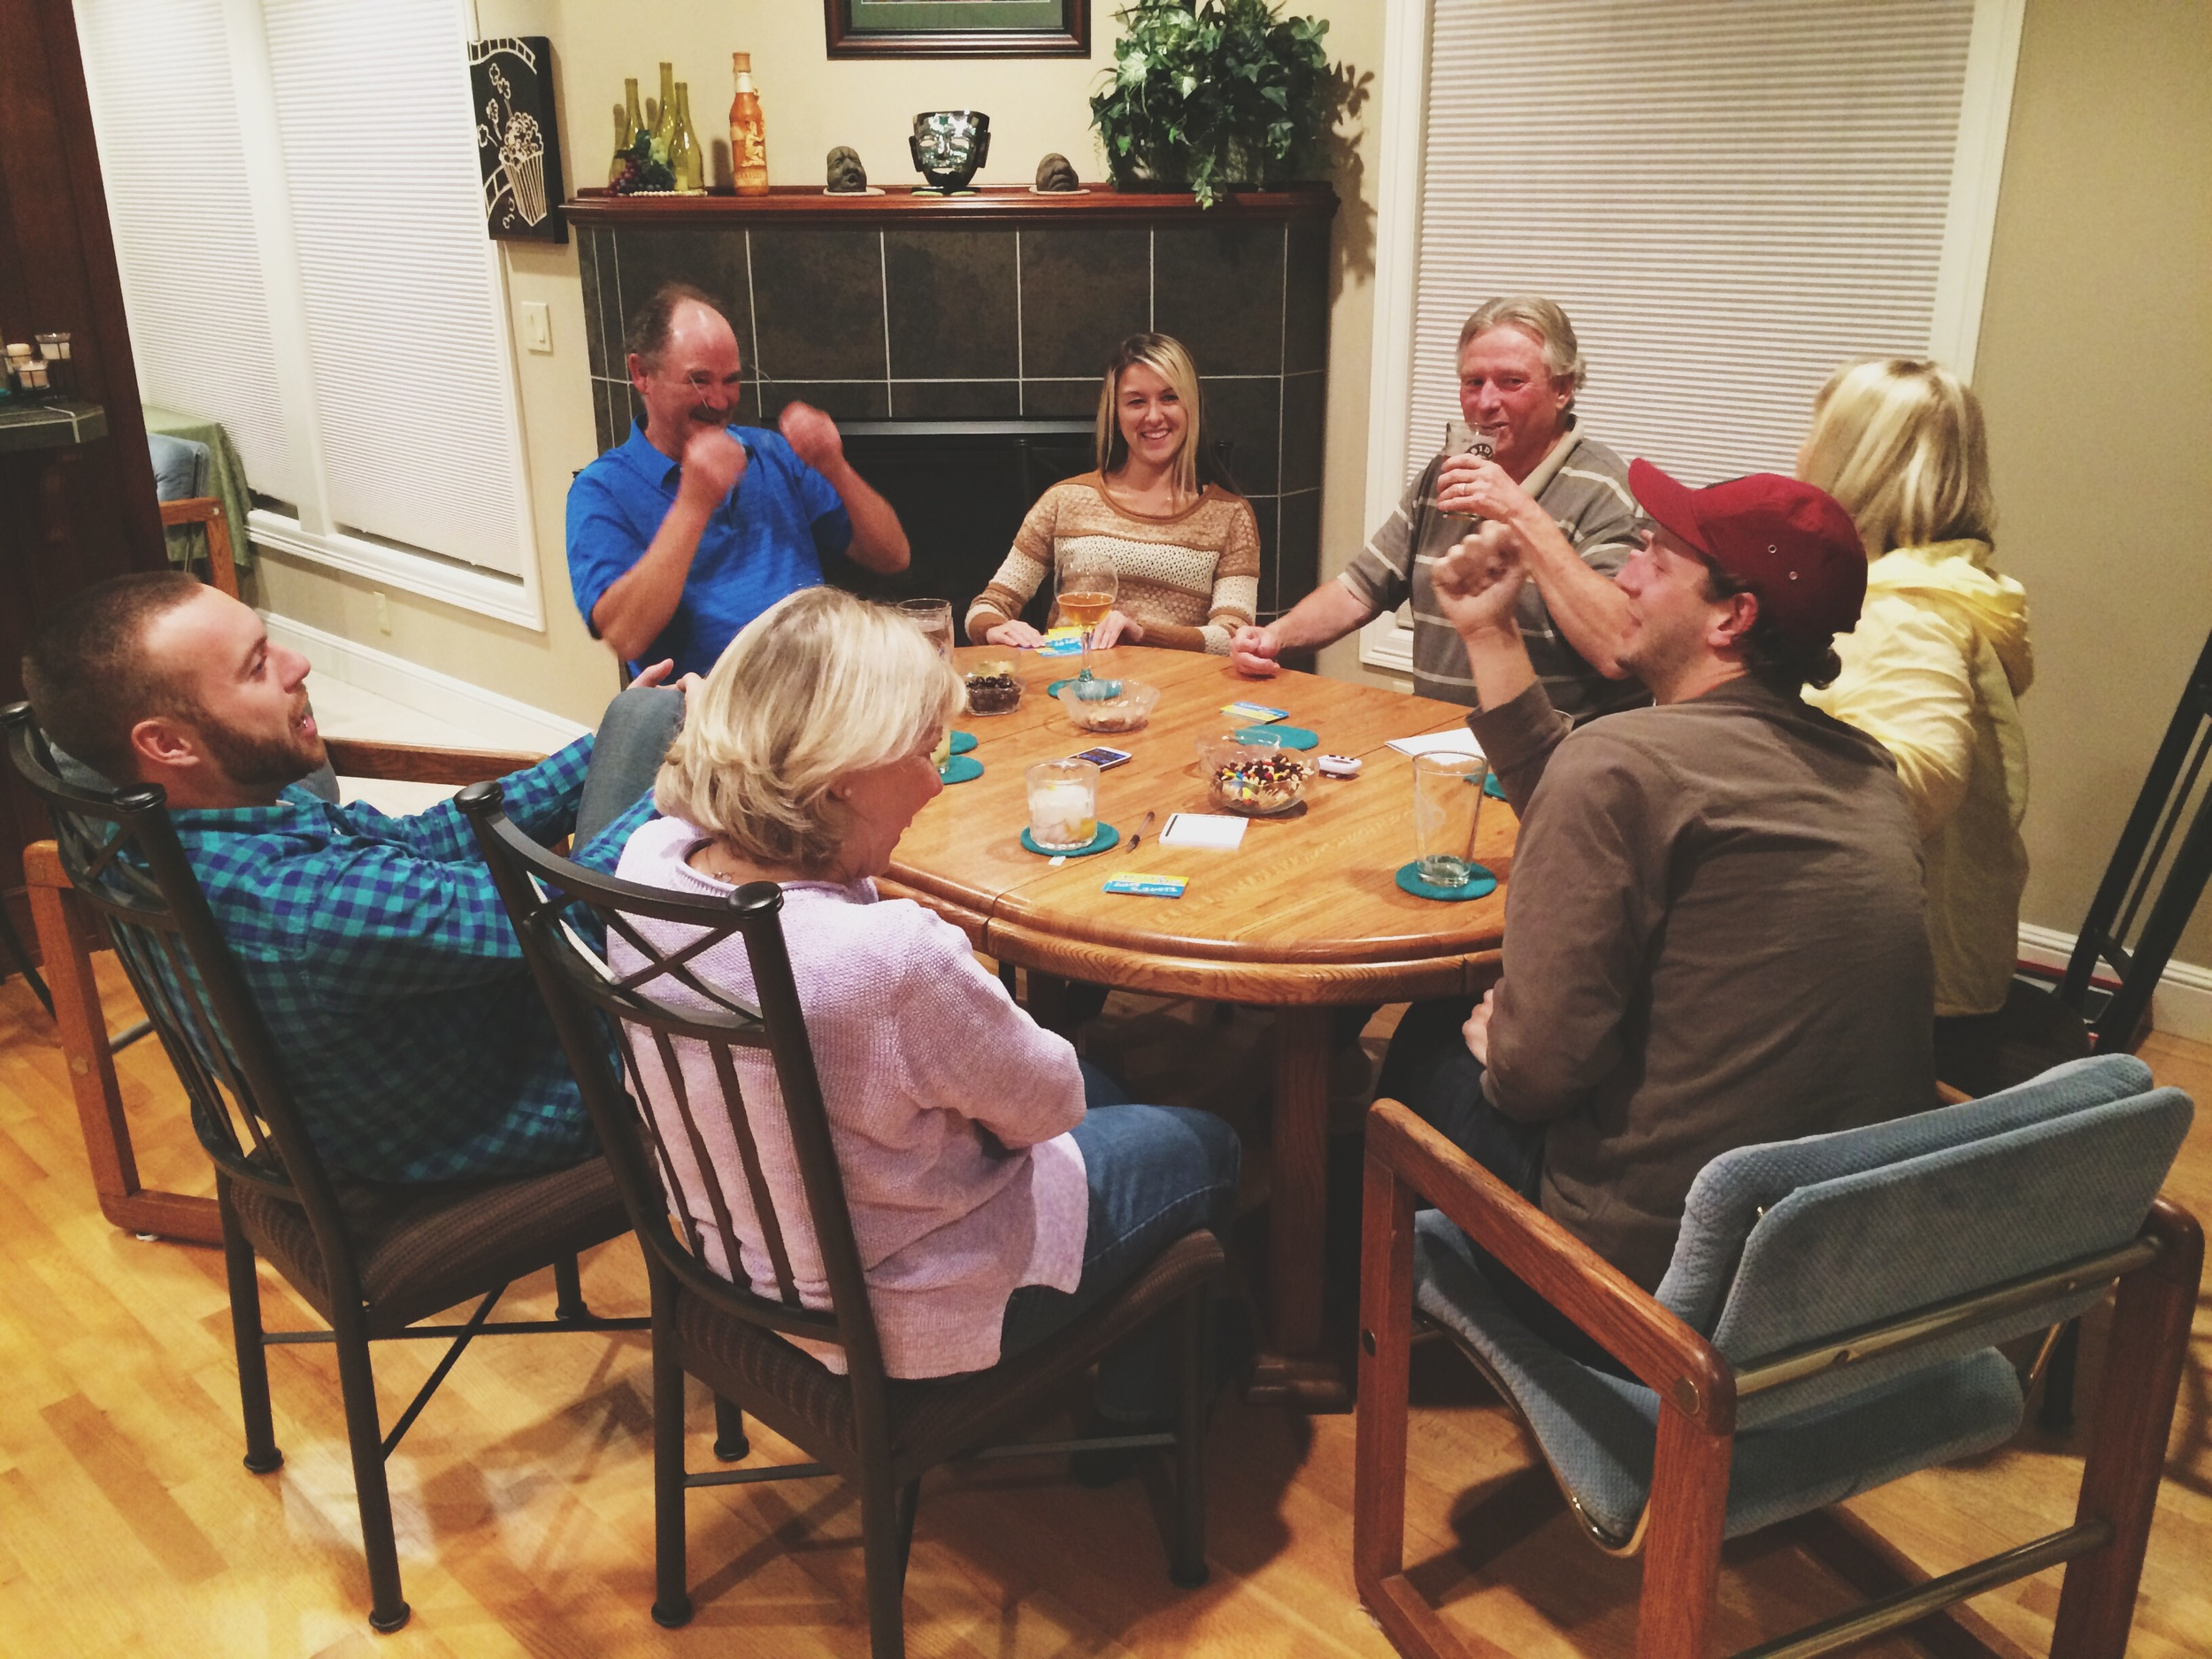 Game night with the parents